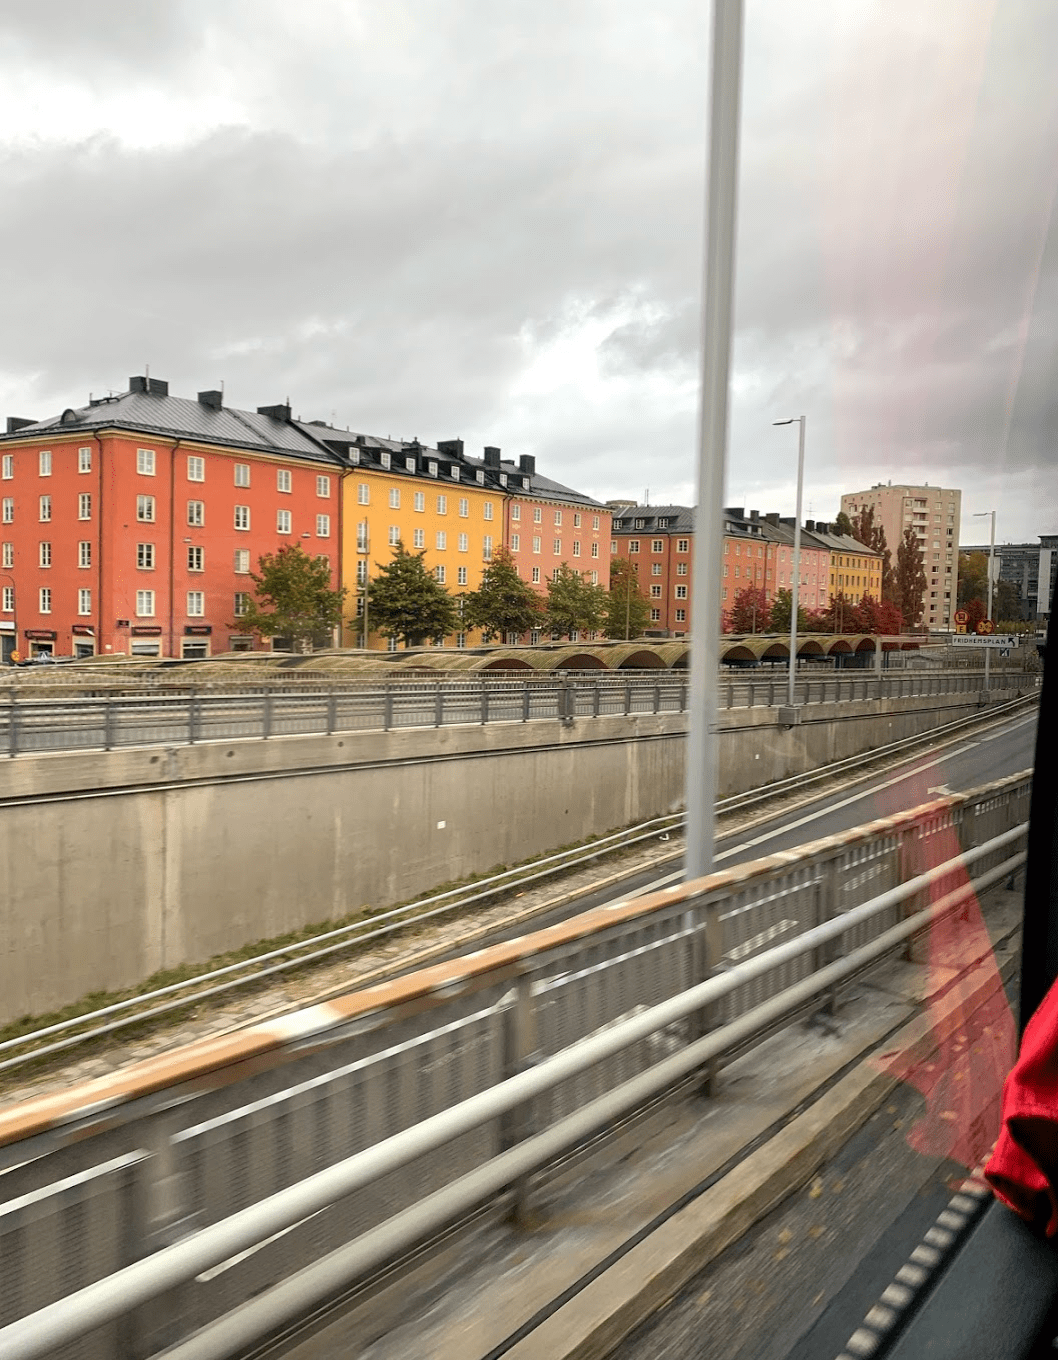 Houses on the drive into Stockholm, Sweden